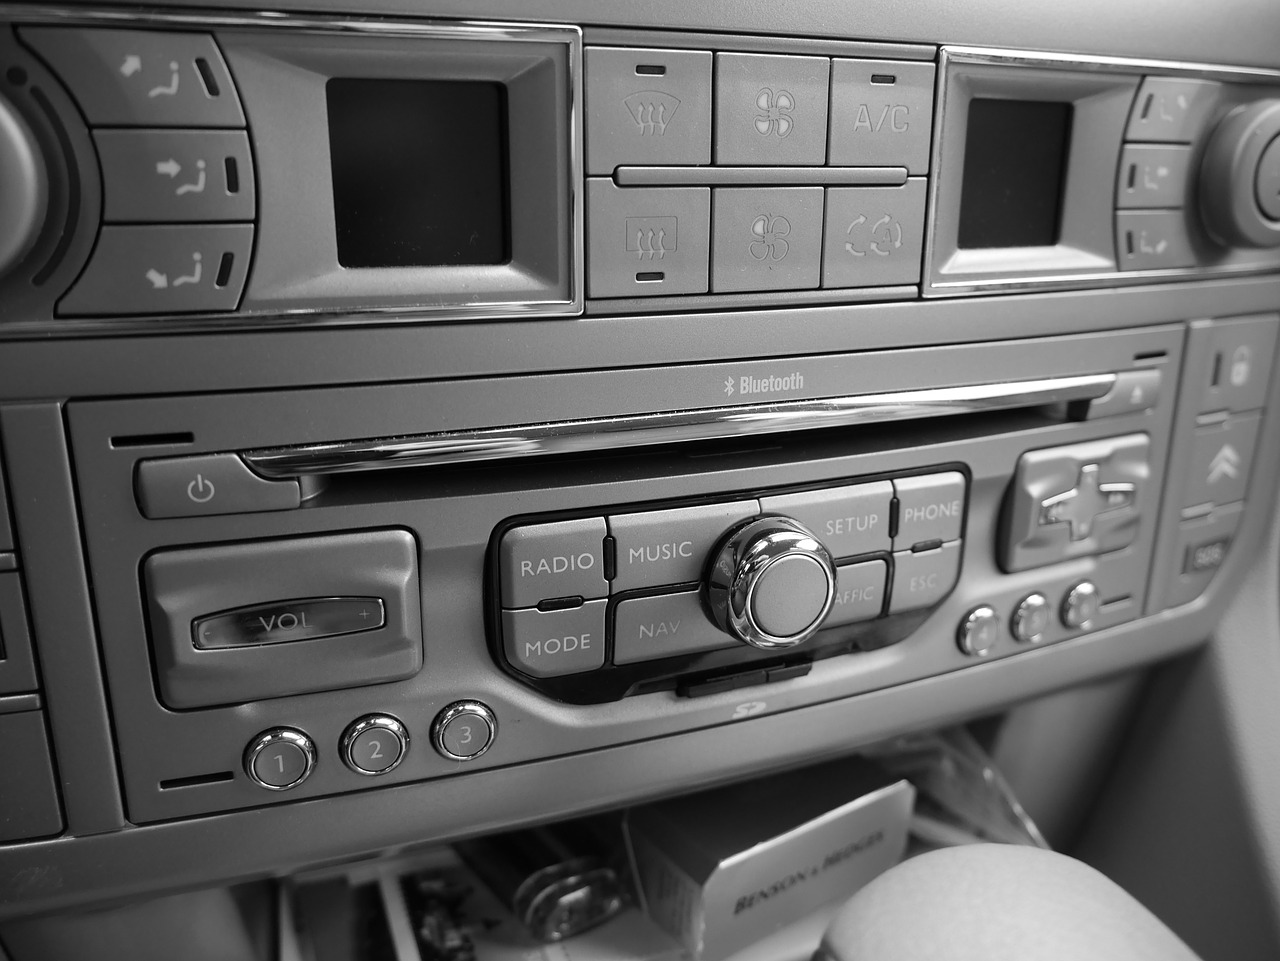 autoradio radio music system free photo